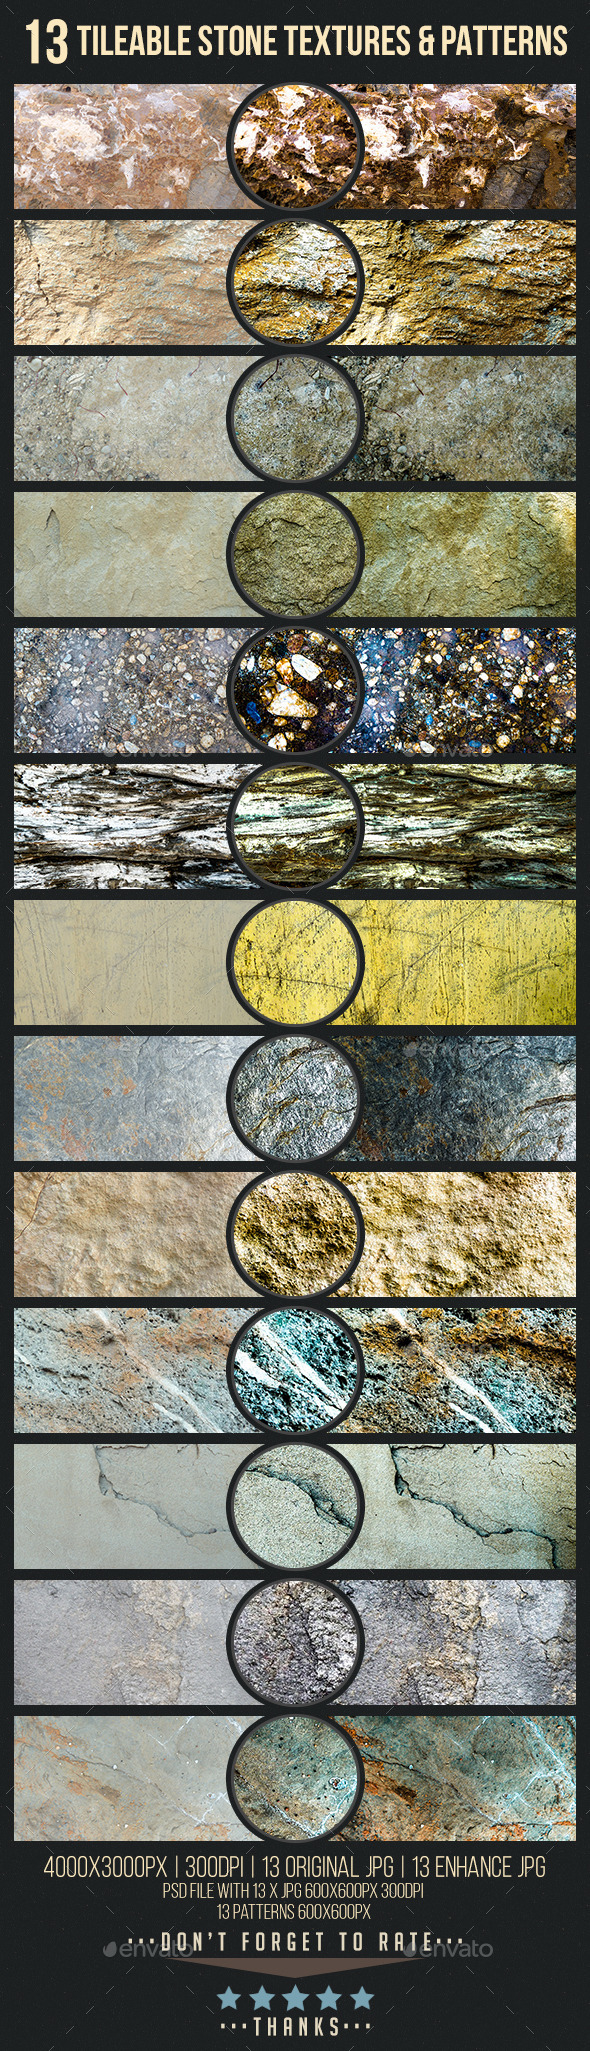 GraphicRiver 13 Tileable Stone Textures Patterns and Images 11551336